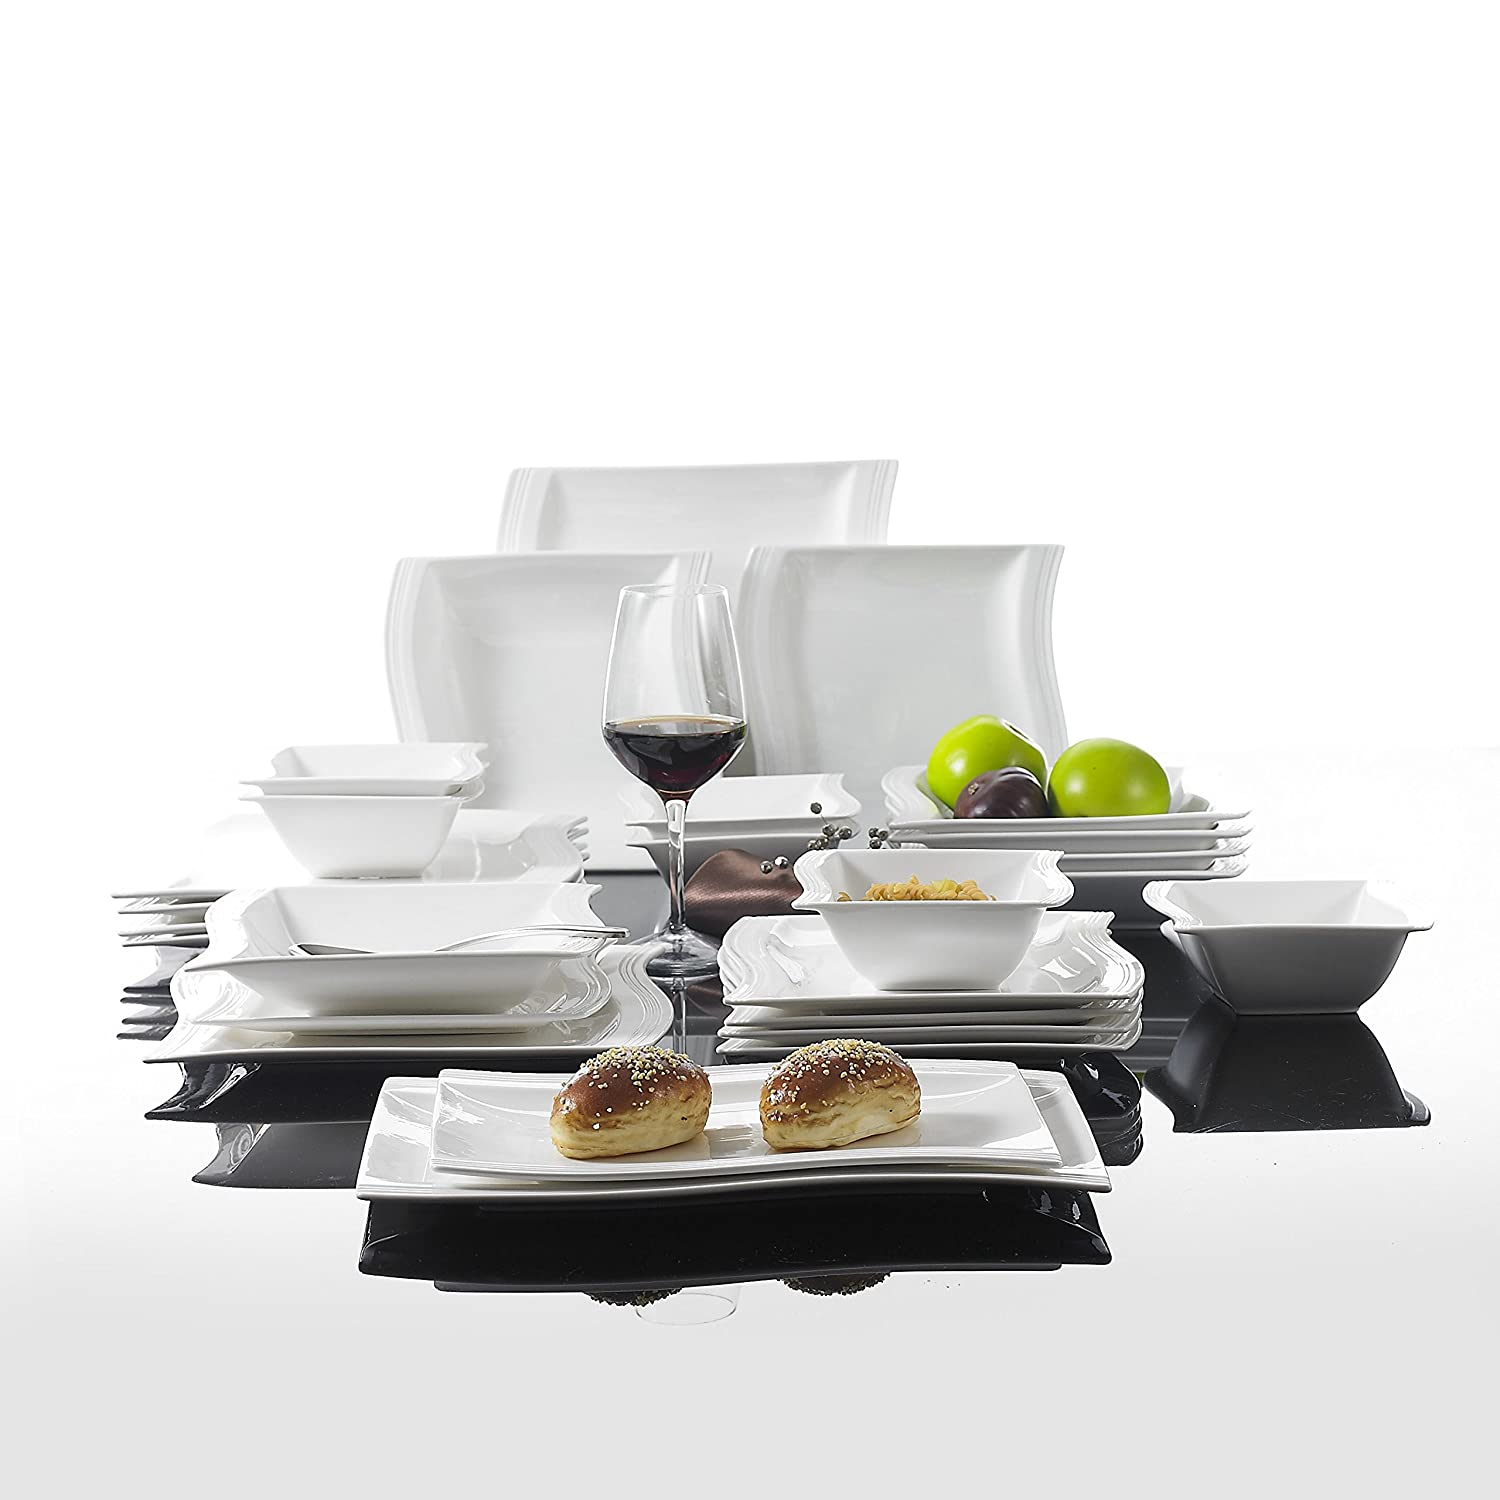 Amazon.com | Malacasa Series Flora 26-Piece Ivory White Porcelain Dinner Combi-Set with 6 Cereal Bowls 6 Dessert Plates 6 Soup Plates 6 Dinner Plates and ...  sc 1 st  Amazon.com : oblong dinner plates white - pezcame.com